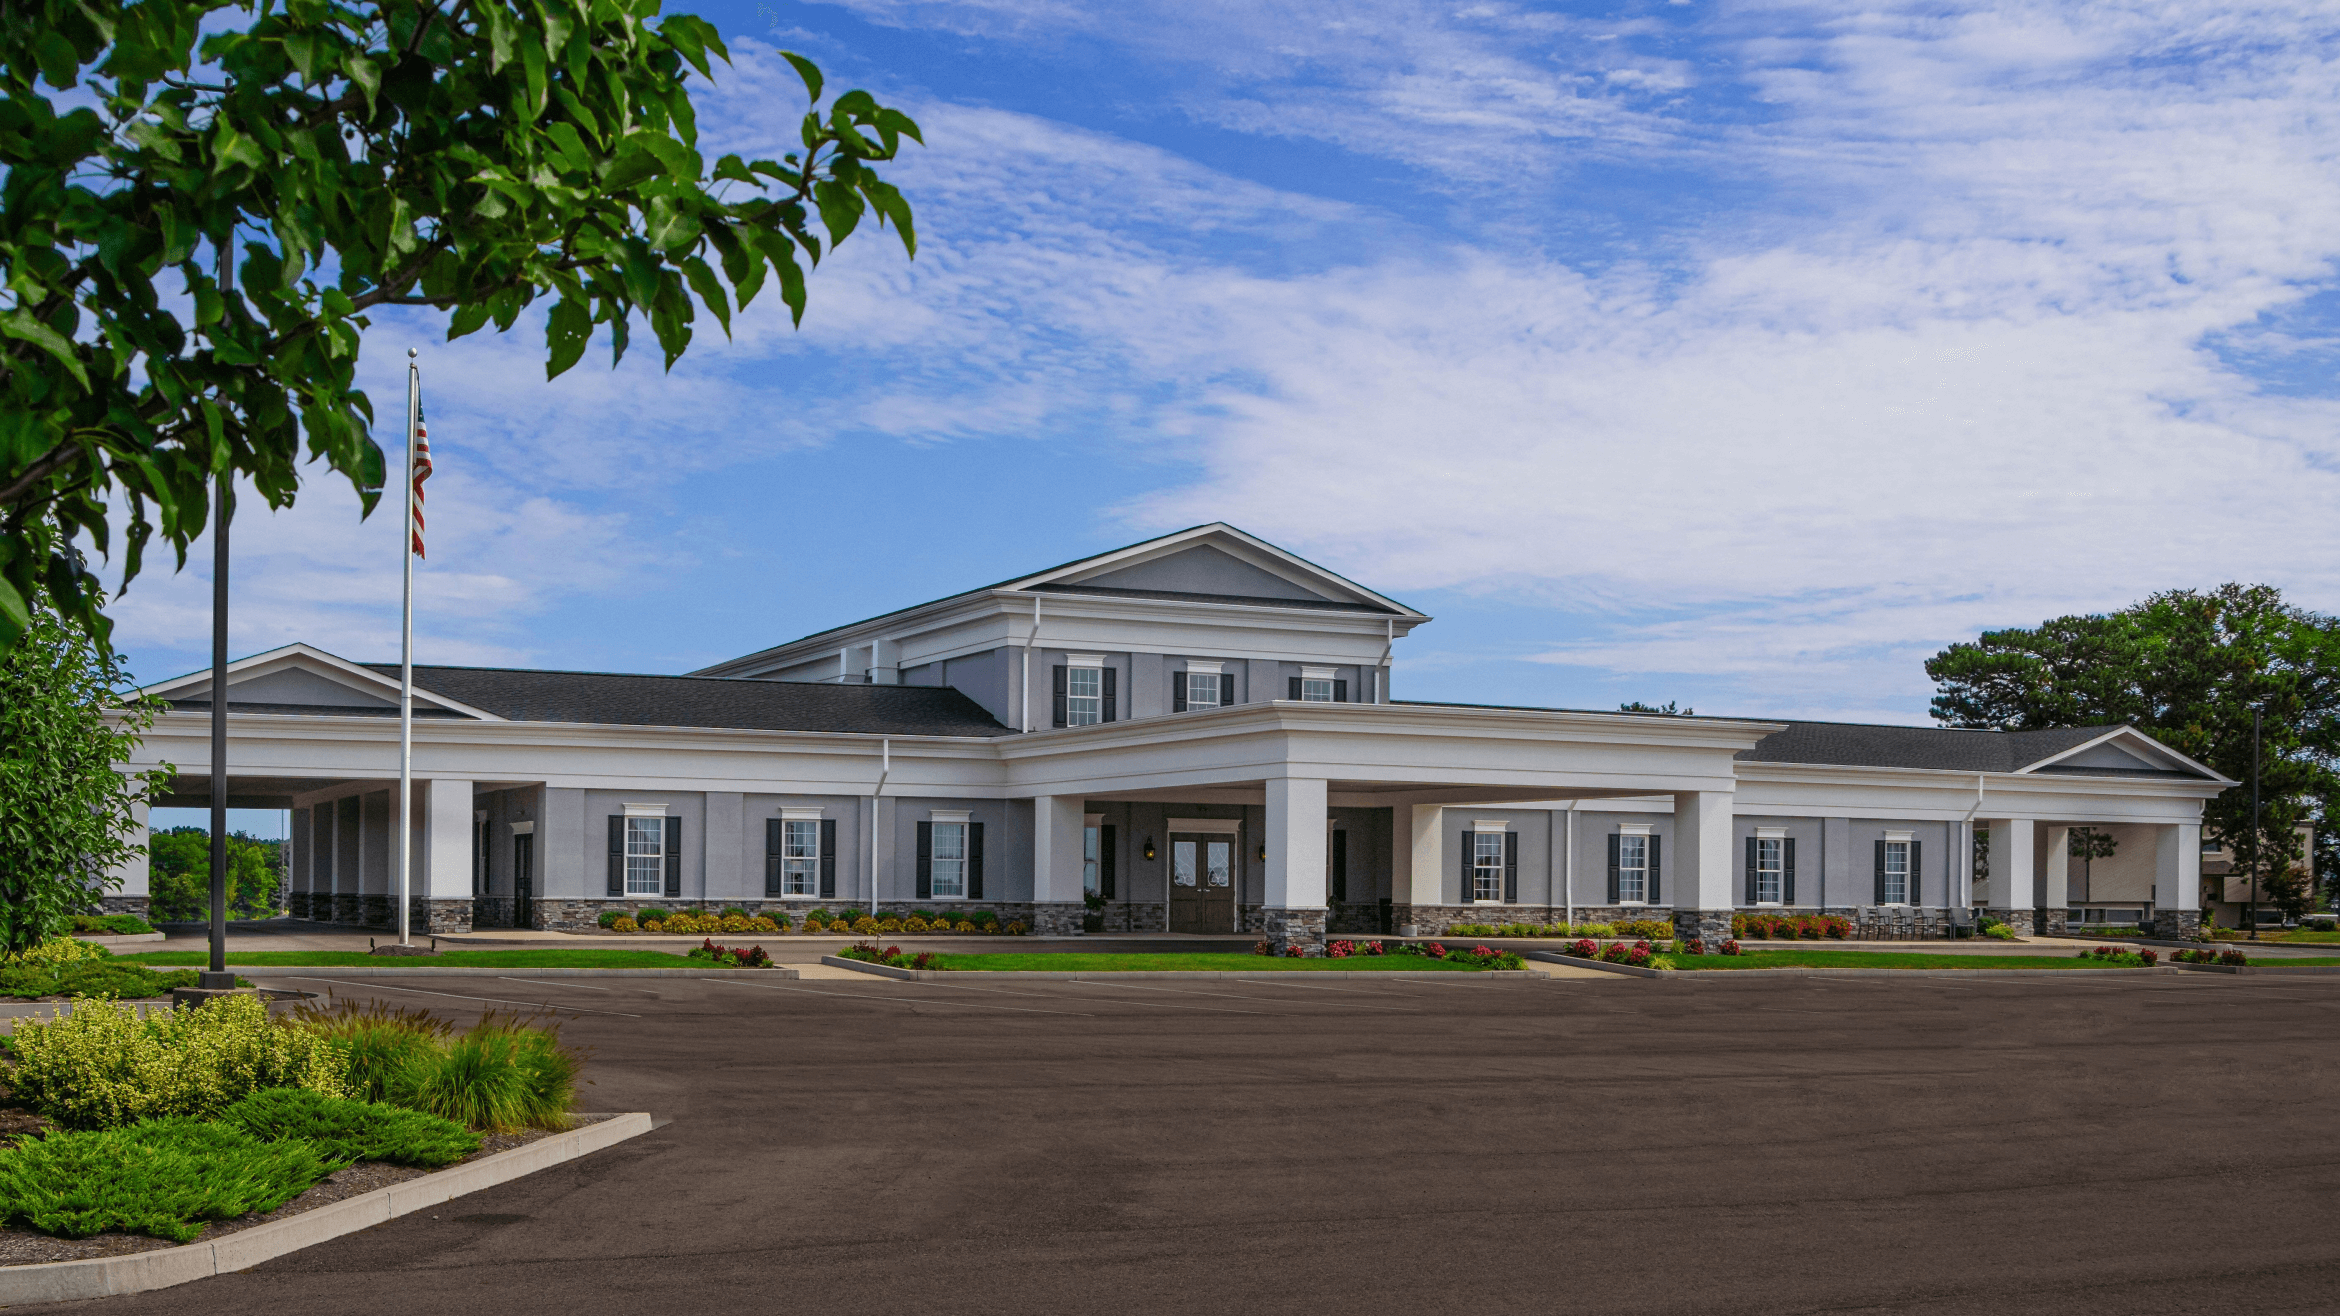 tour our funeral home in Middletown, OH